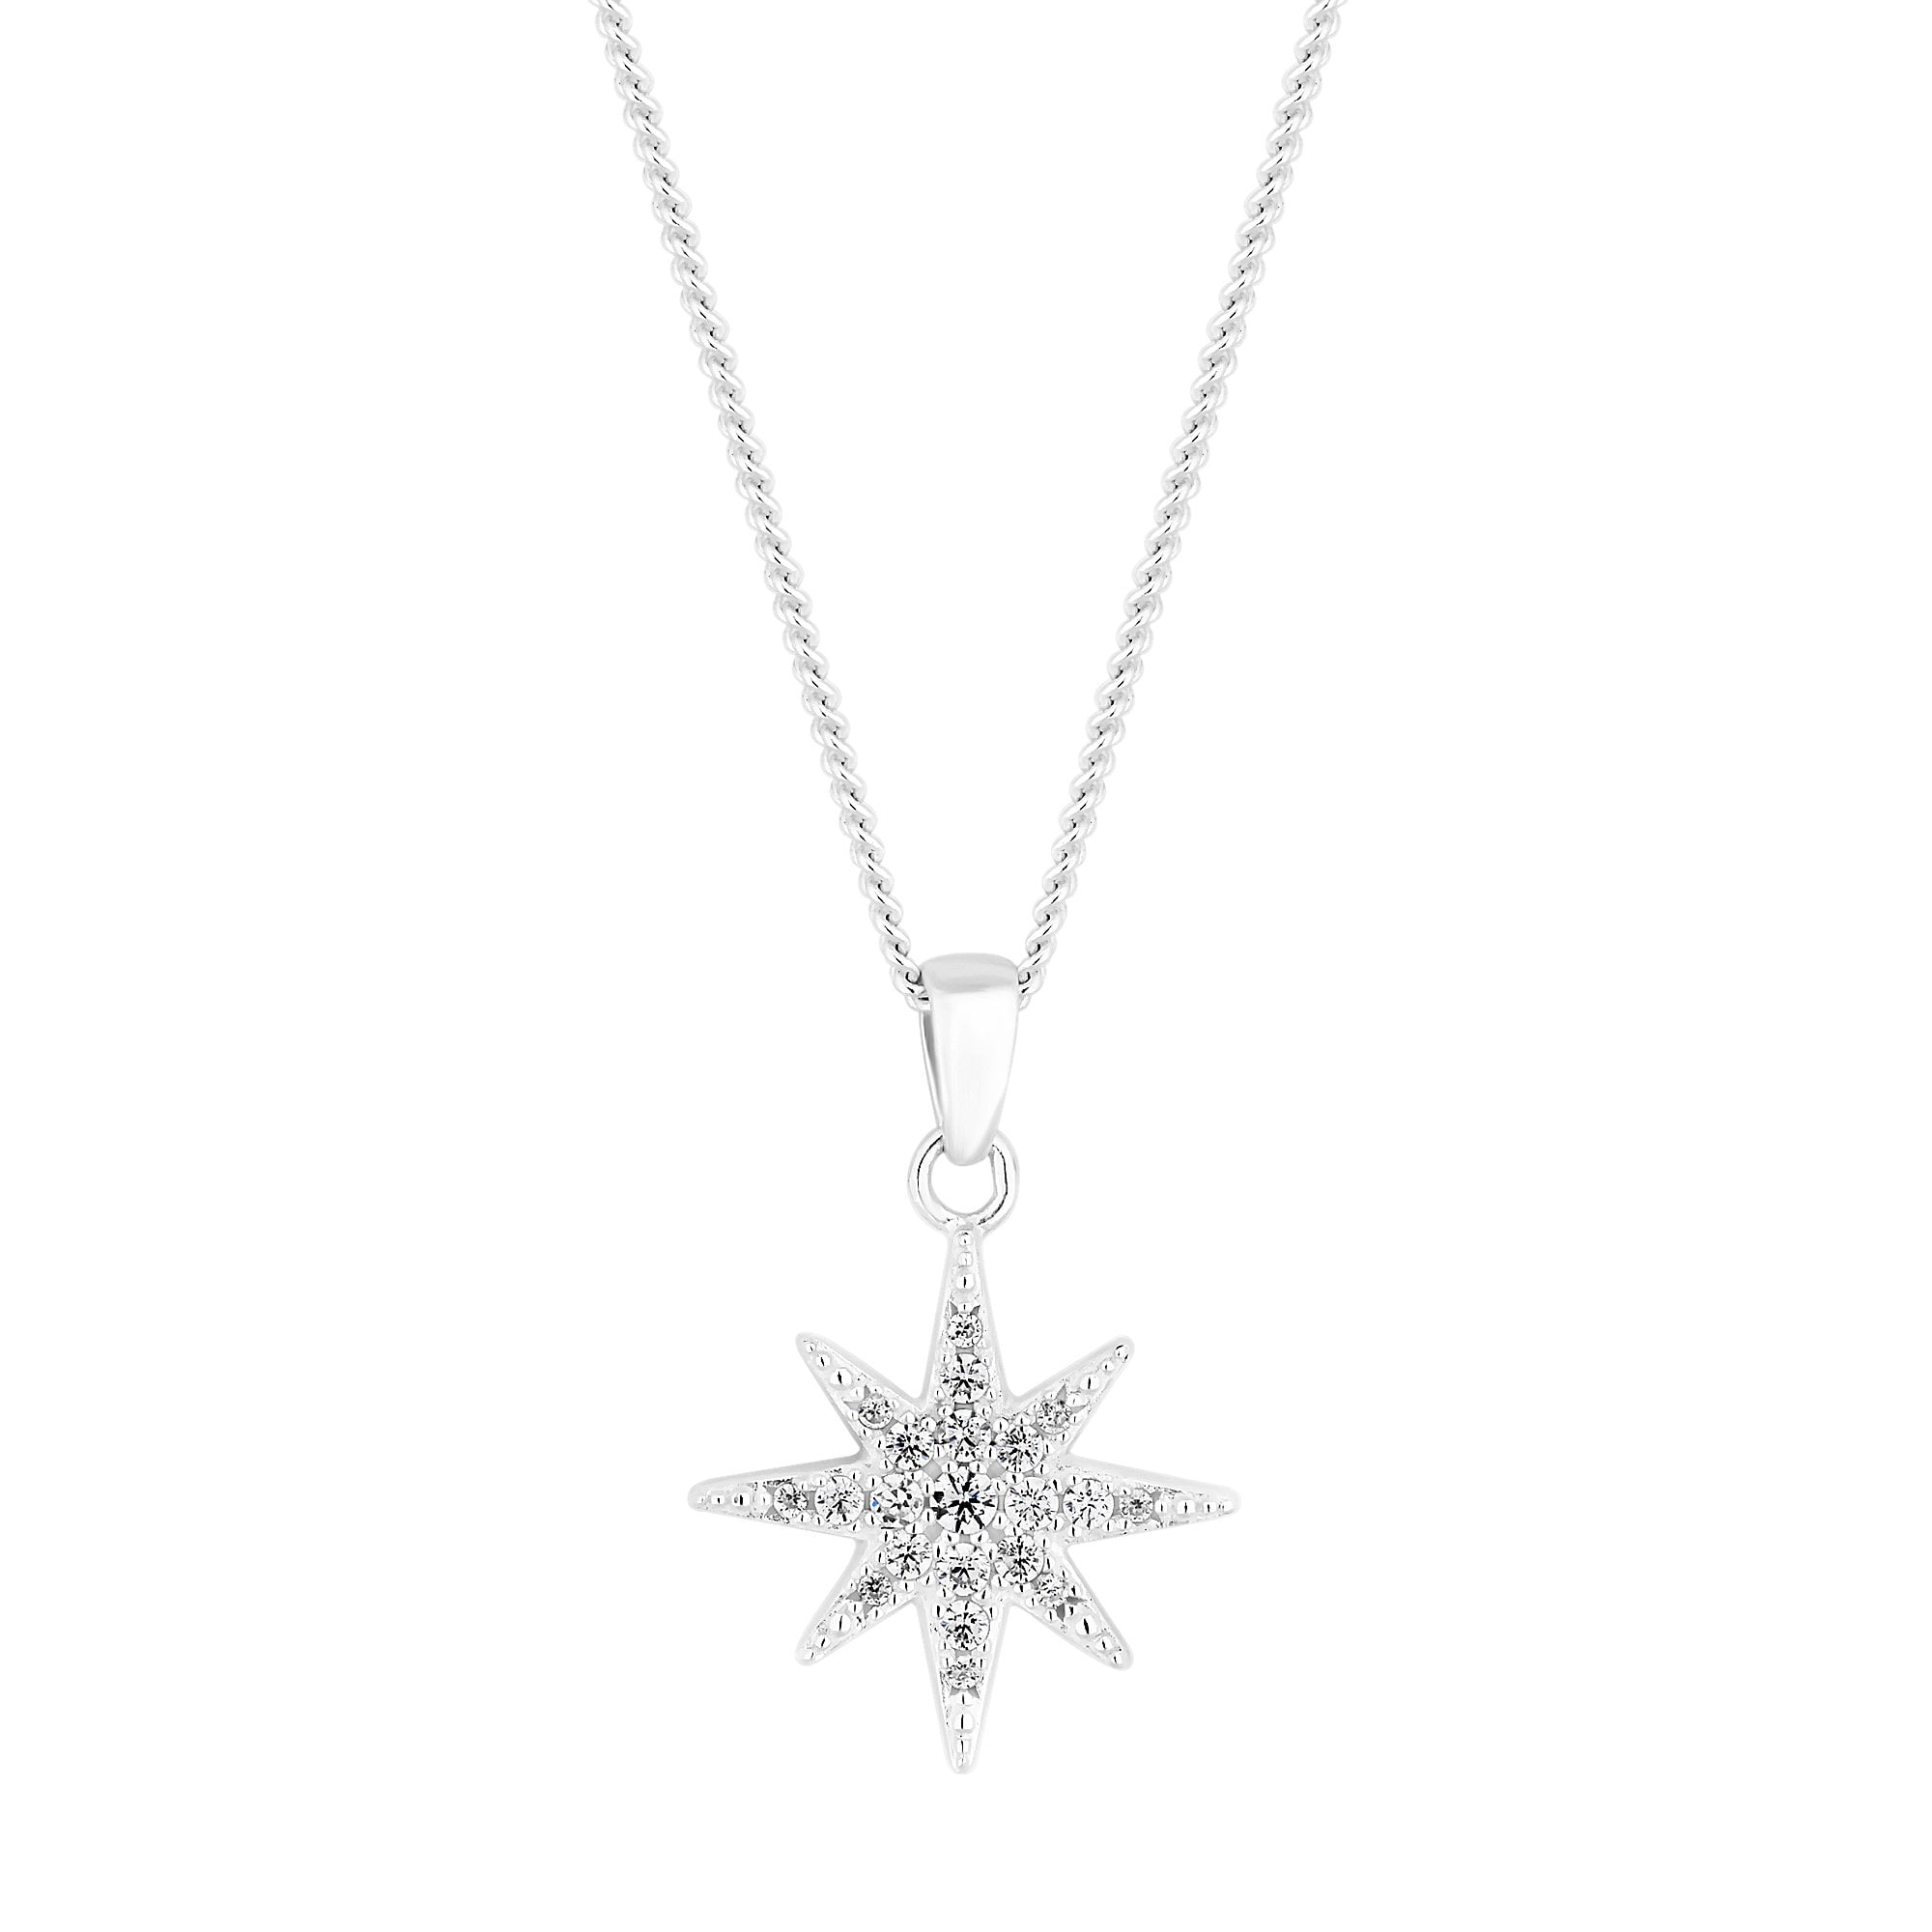 t sterling necklace in cz silver ct w quot pendant north star